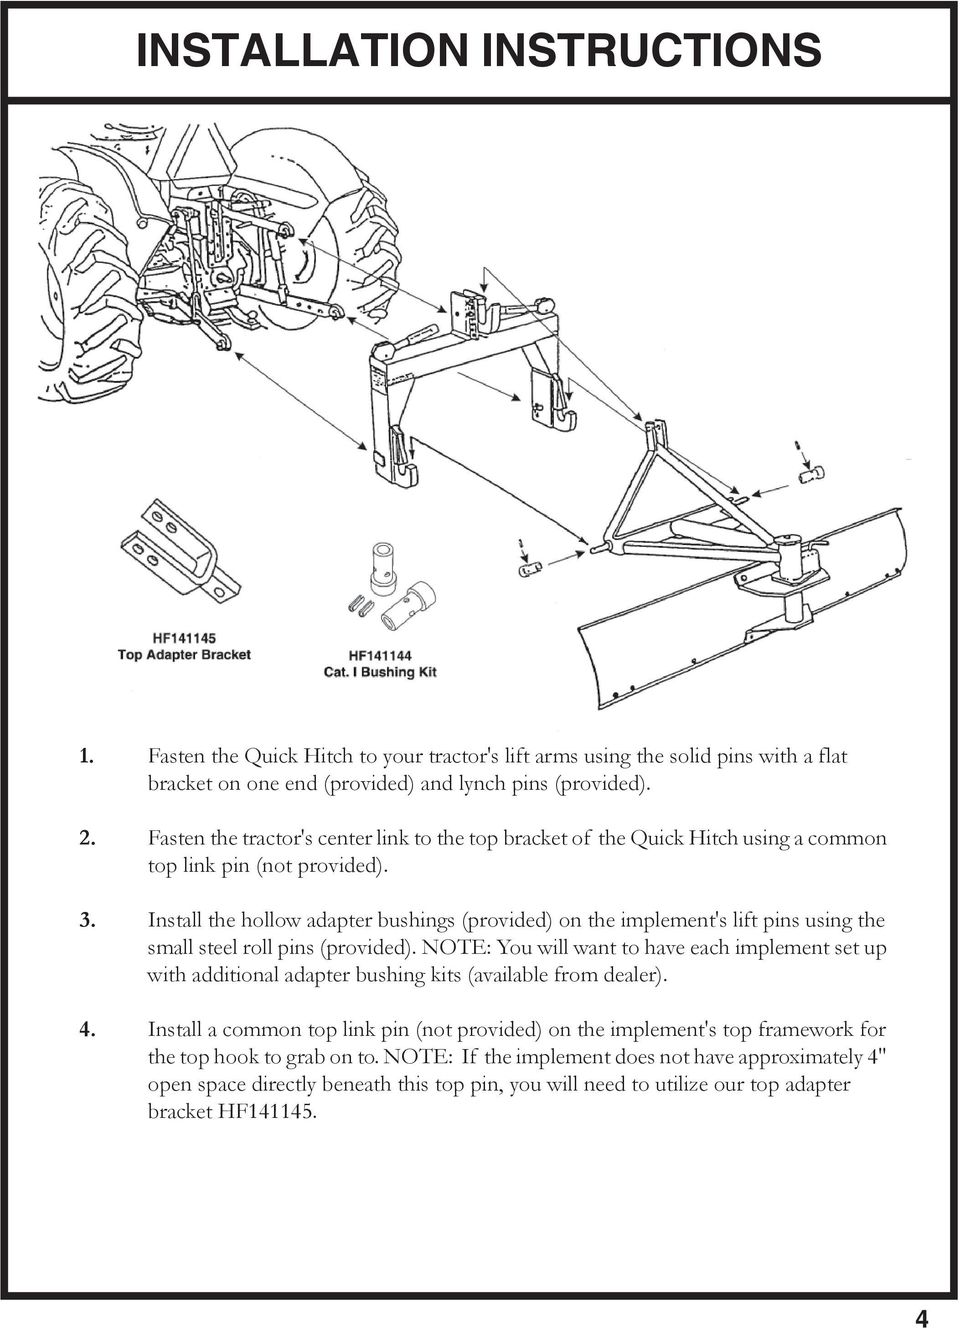 Install the hollow adapter bushings (provided) on the implement's lift pins using the small steel roll pins (provided).